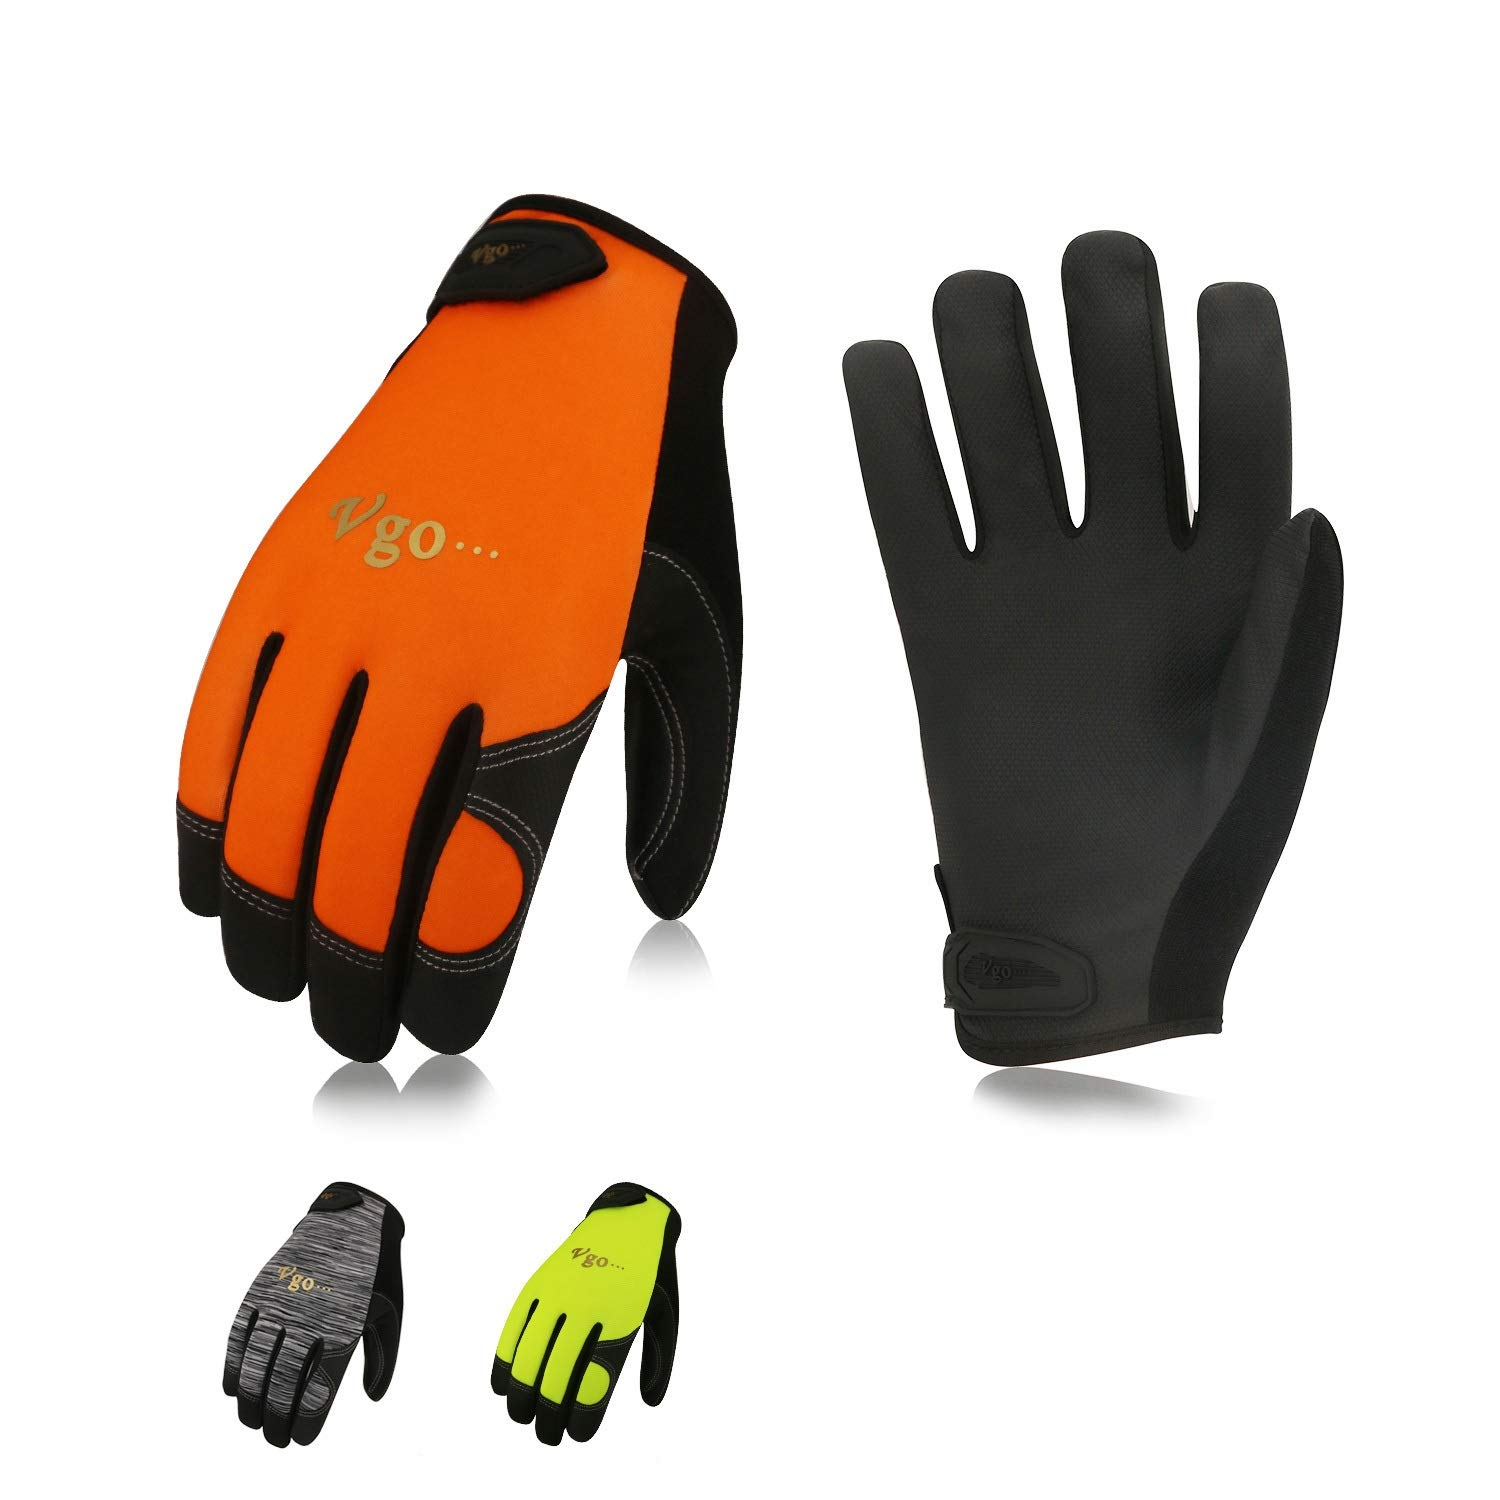 Vgo 3 Pairs High Dexterity Construction Protective Touchscreen Capable Builder Driver PU Leather Work Garden Gloves Multipurpose Size 9//L, Grey /& Orange /& Green, PU8718